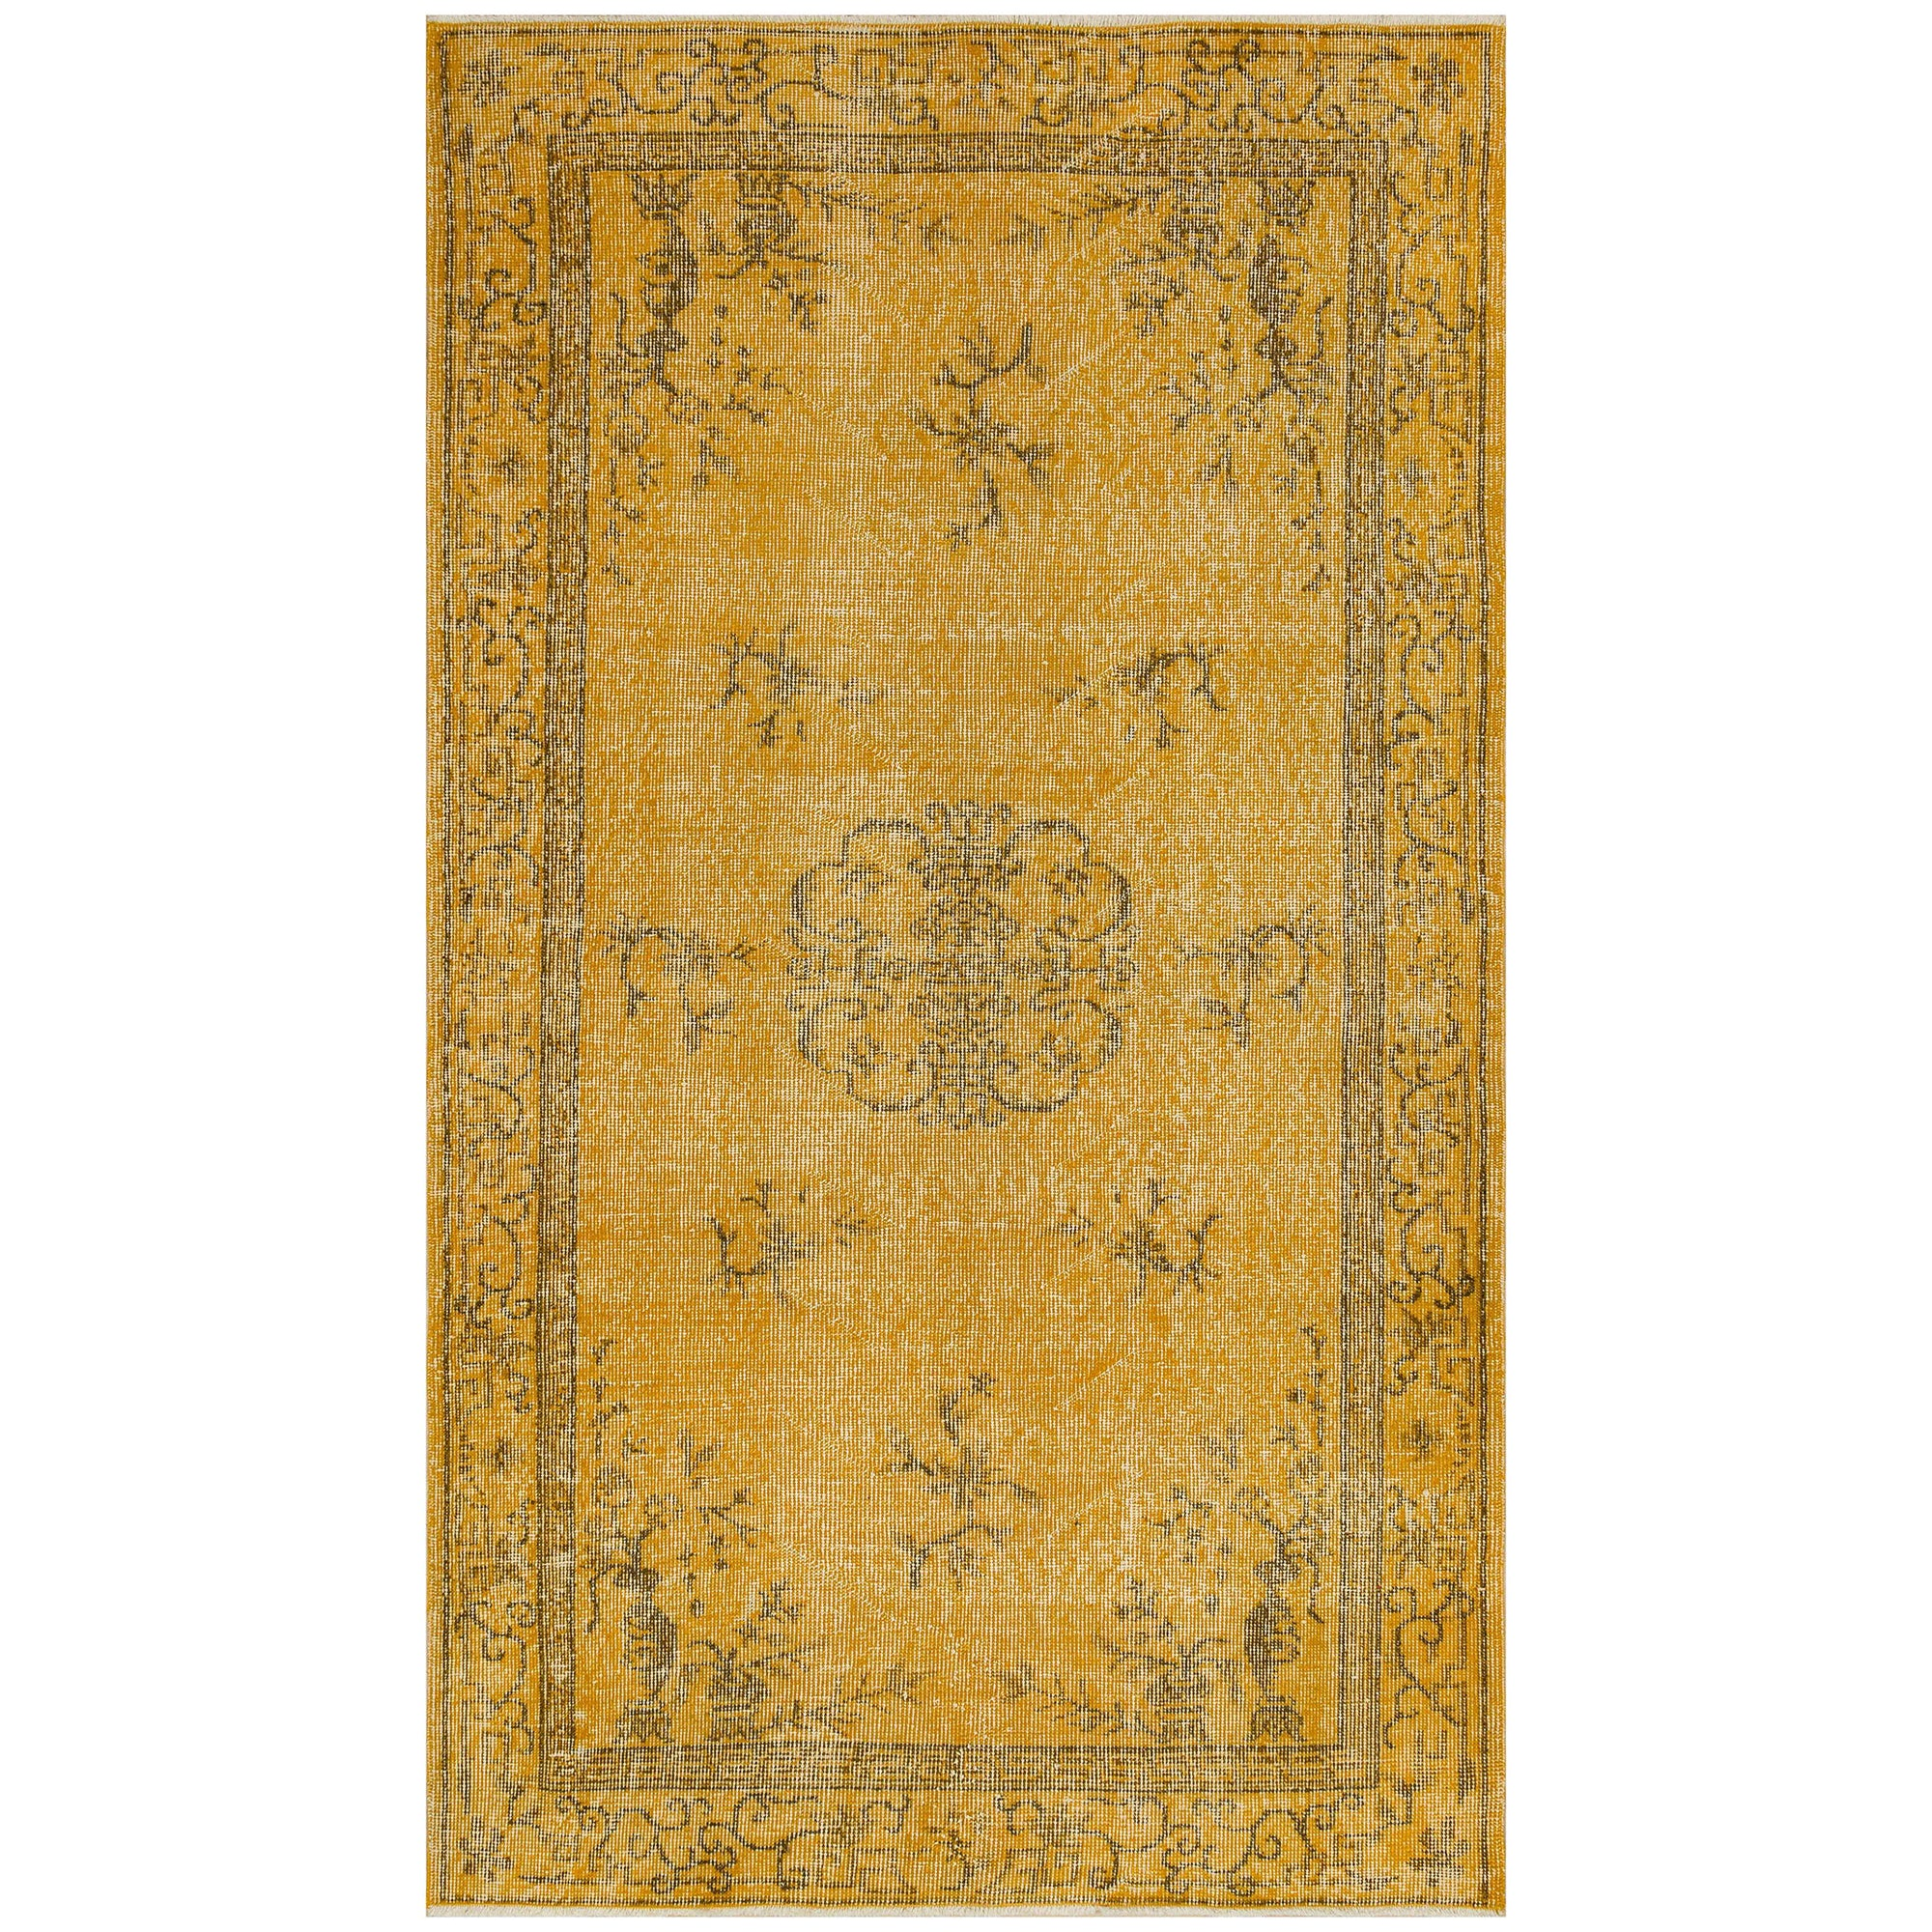 114 X 202 Anatolian Hand Knotted Carpet Vintage Style 60N2695 -  114 × 202 سجادة أناضولية معقودة يدويًا - Shop Online Furniture and Home Decor Store in Dubai, UAE at ebarza